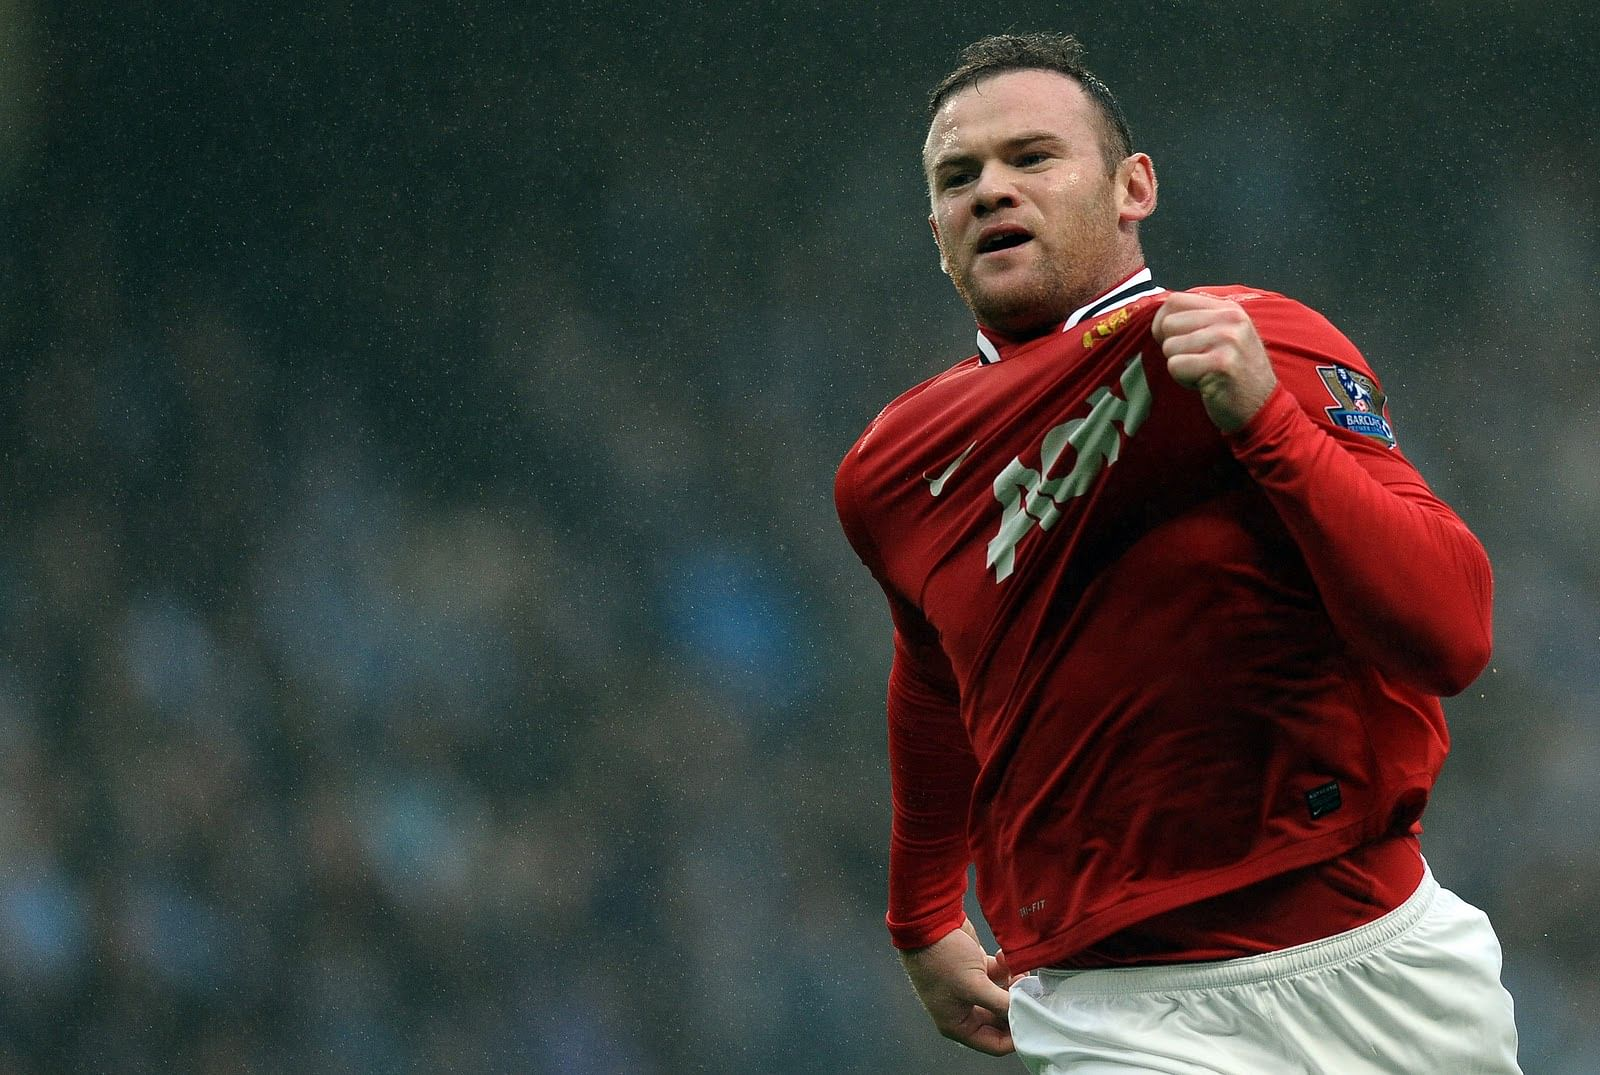 Video: Wayne Rooney- 10 wonderful years at Manchester United